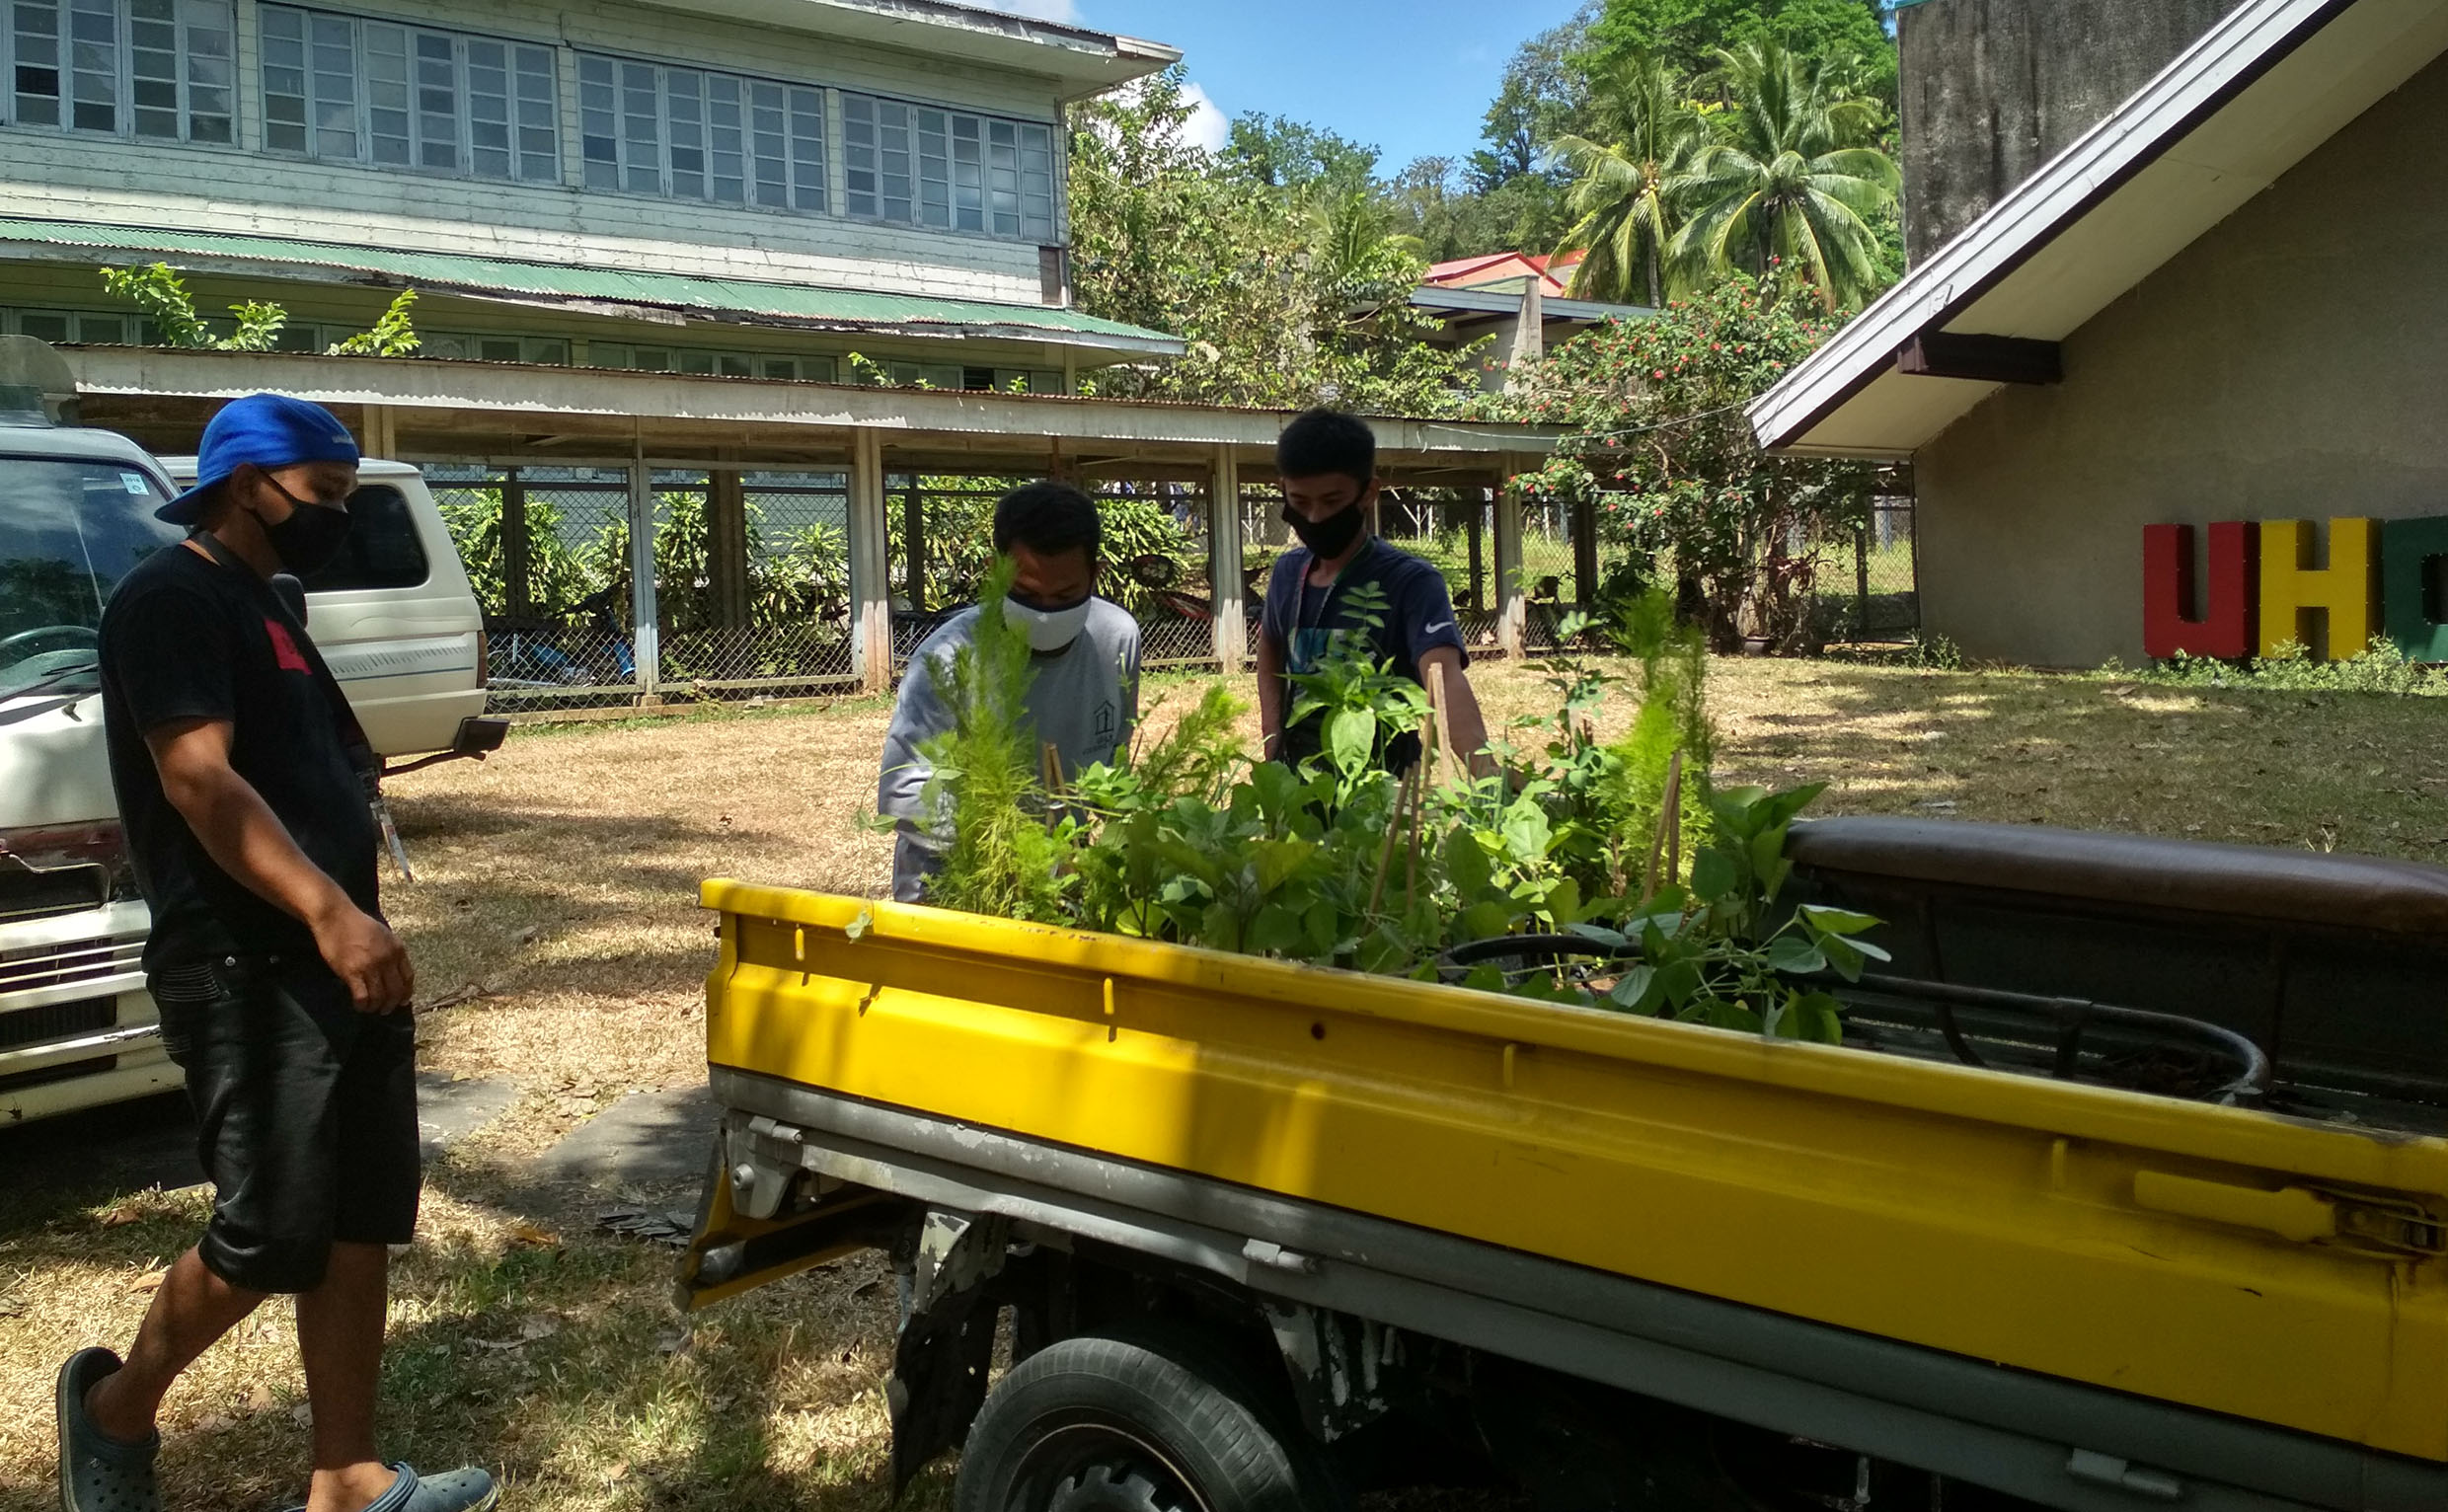 EL Team donates fresh produce, planting materials to stranded dormers